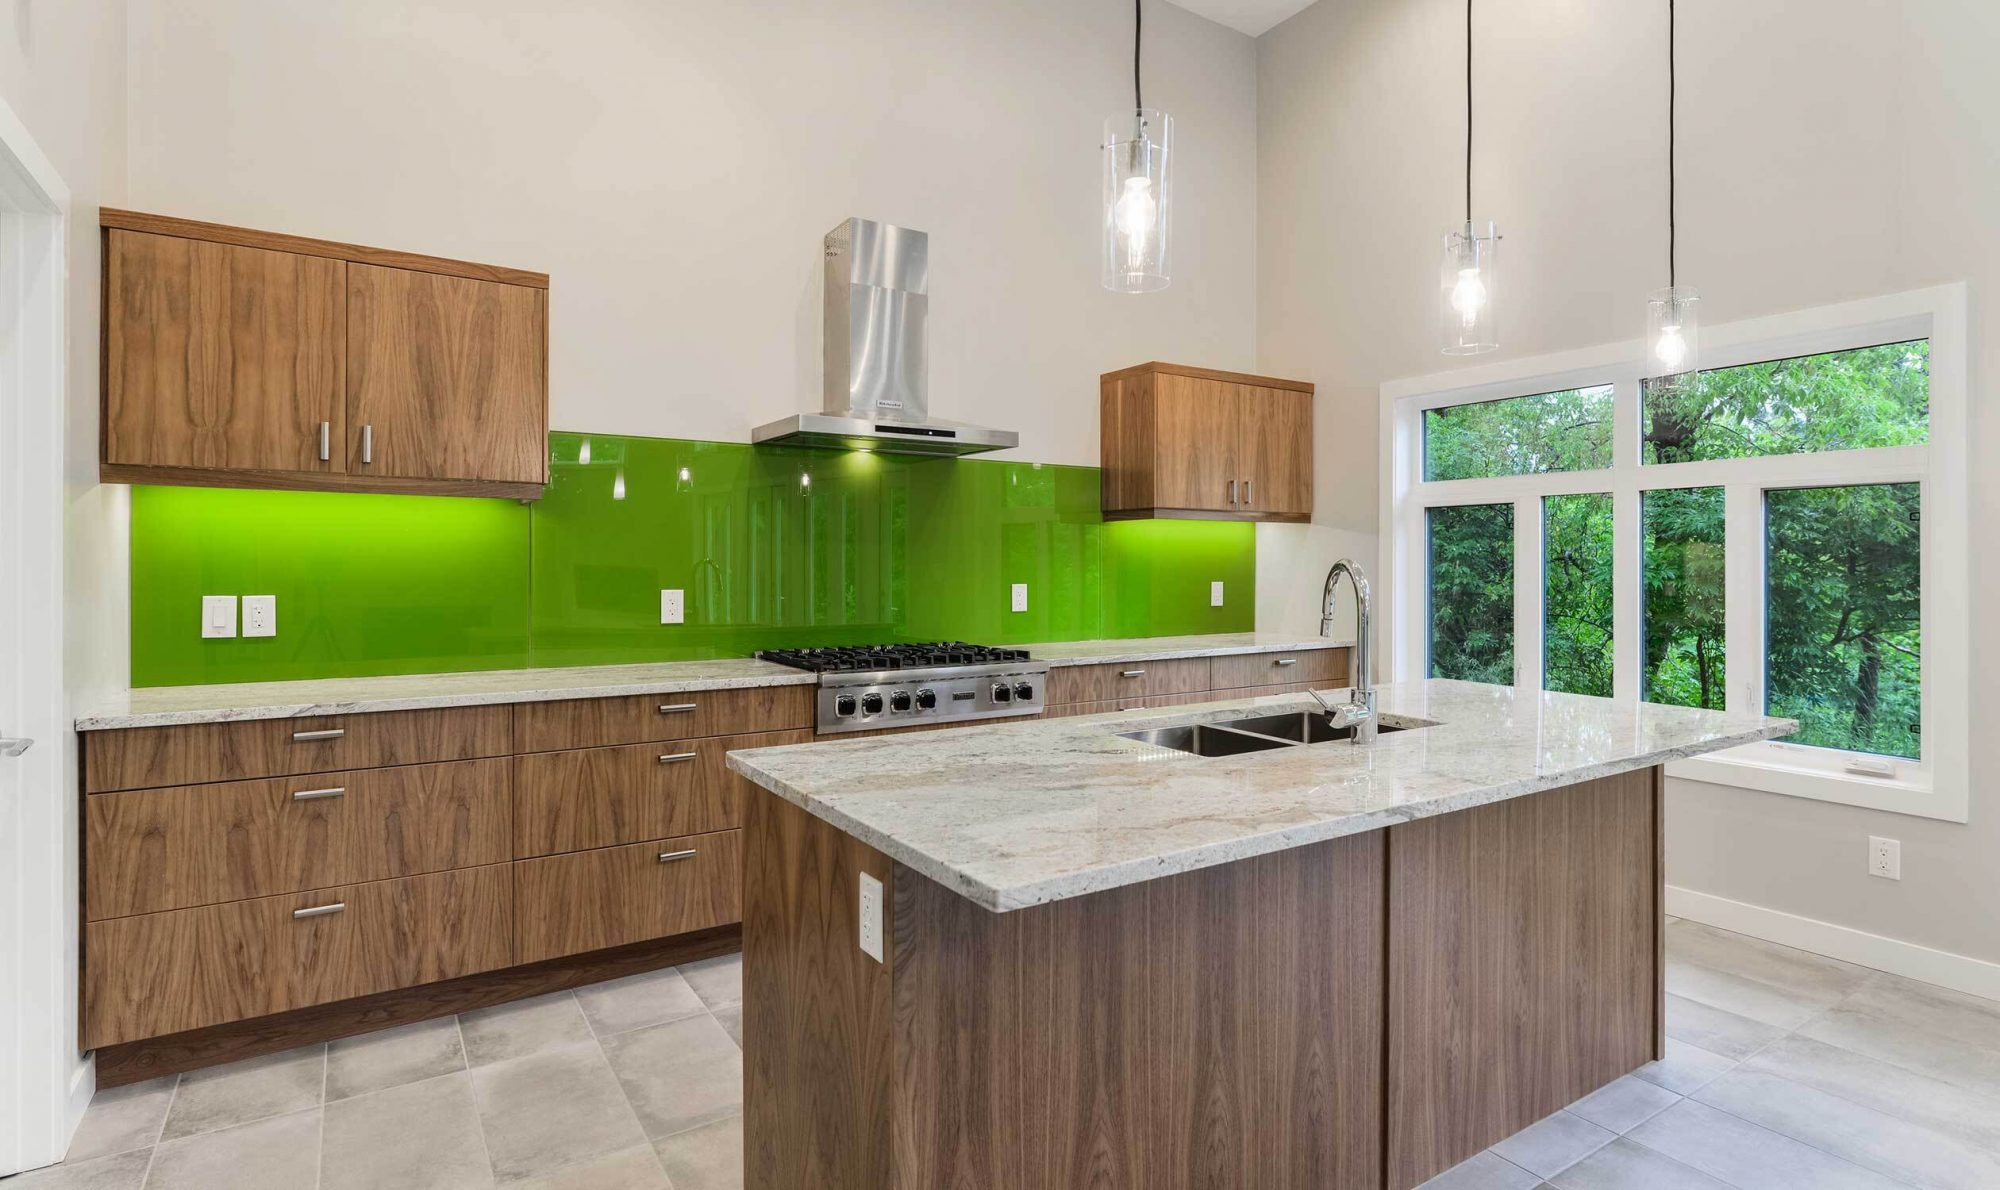 Open, kitchen with beautiful green backsplash and large windows